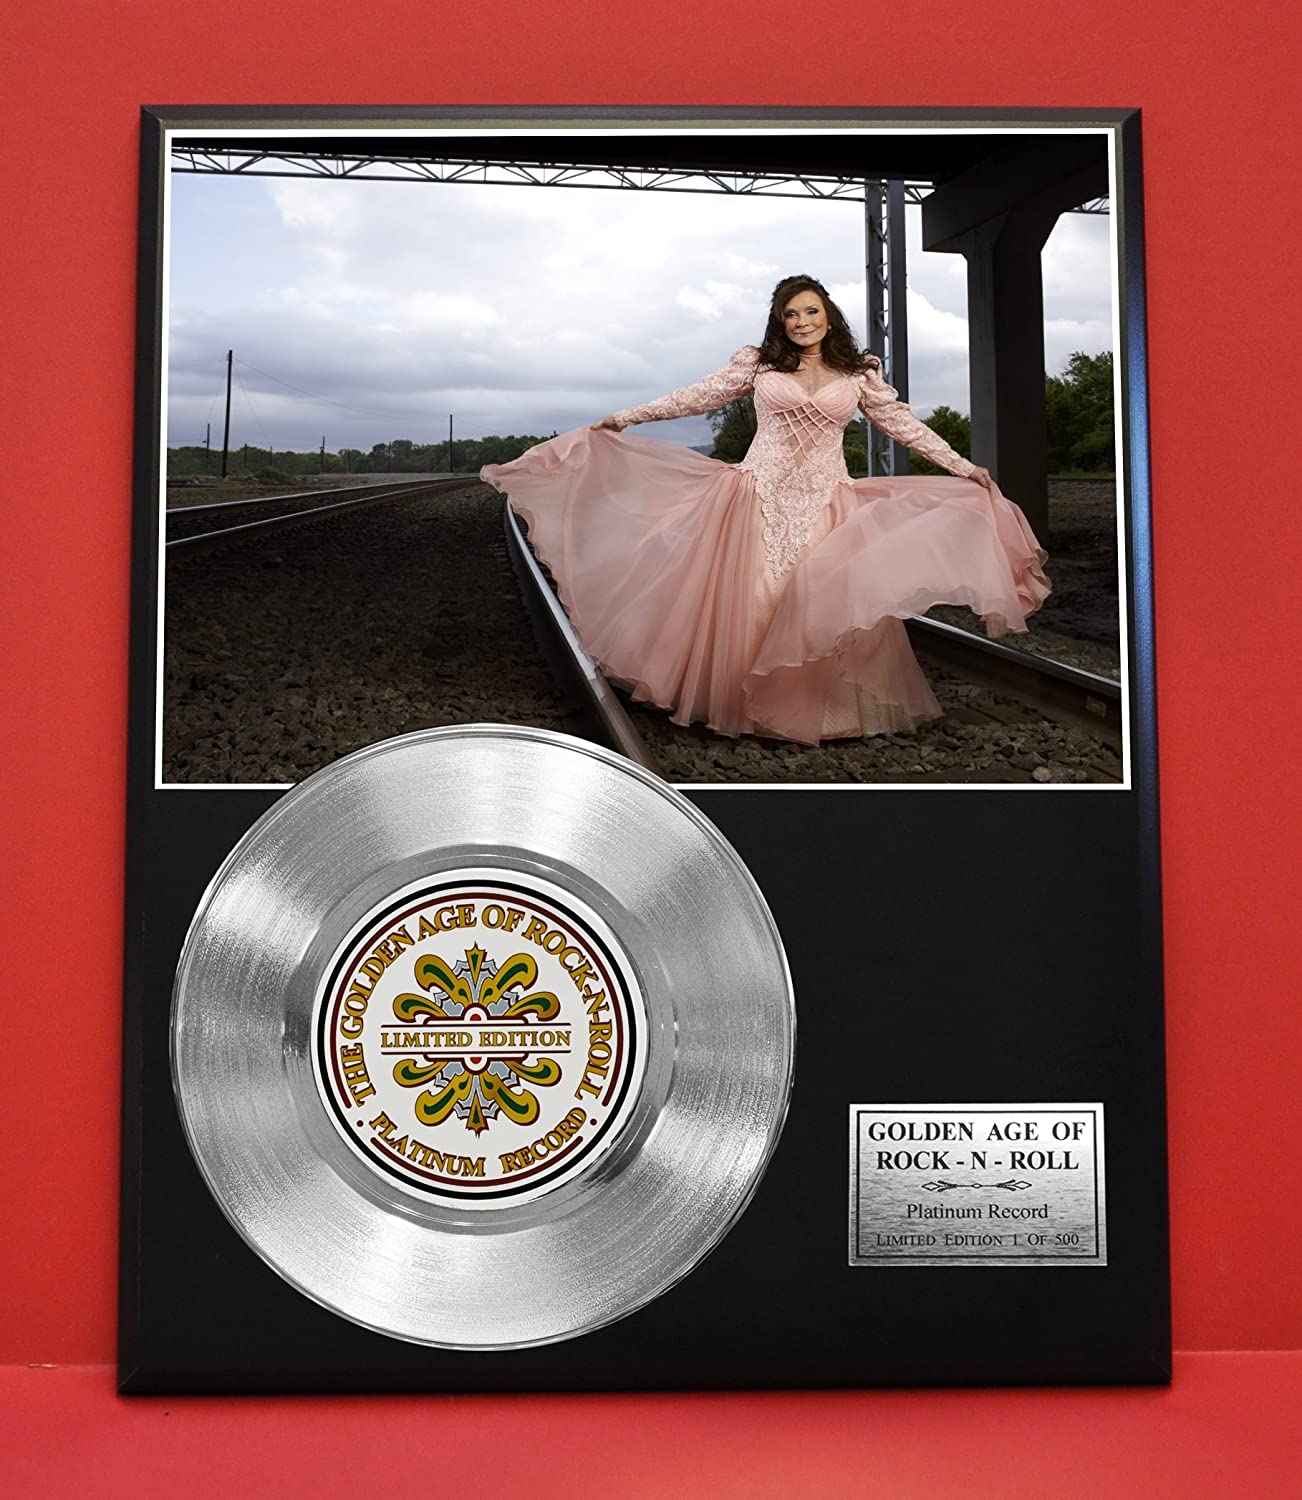 Loretta Lynn LTD Edition Platinum Record Display - Award Quality Music Memorabilia - Gold Record Outlet